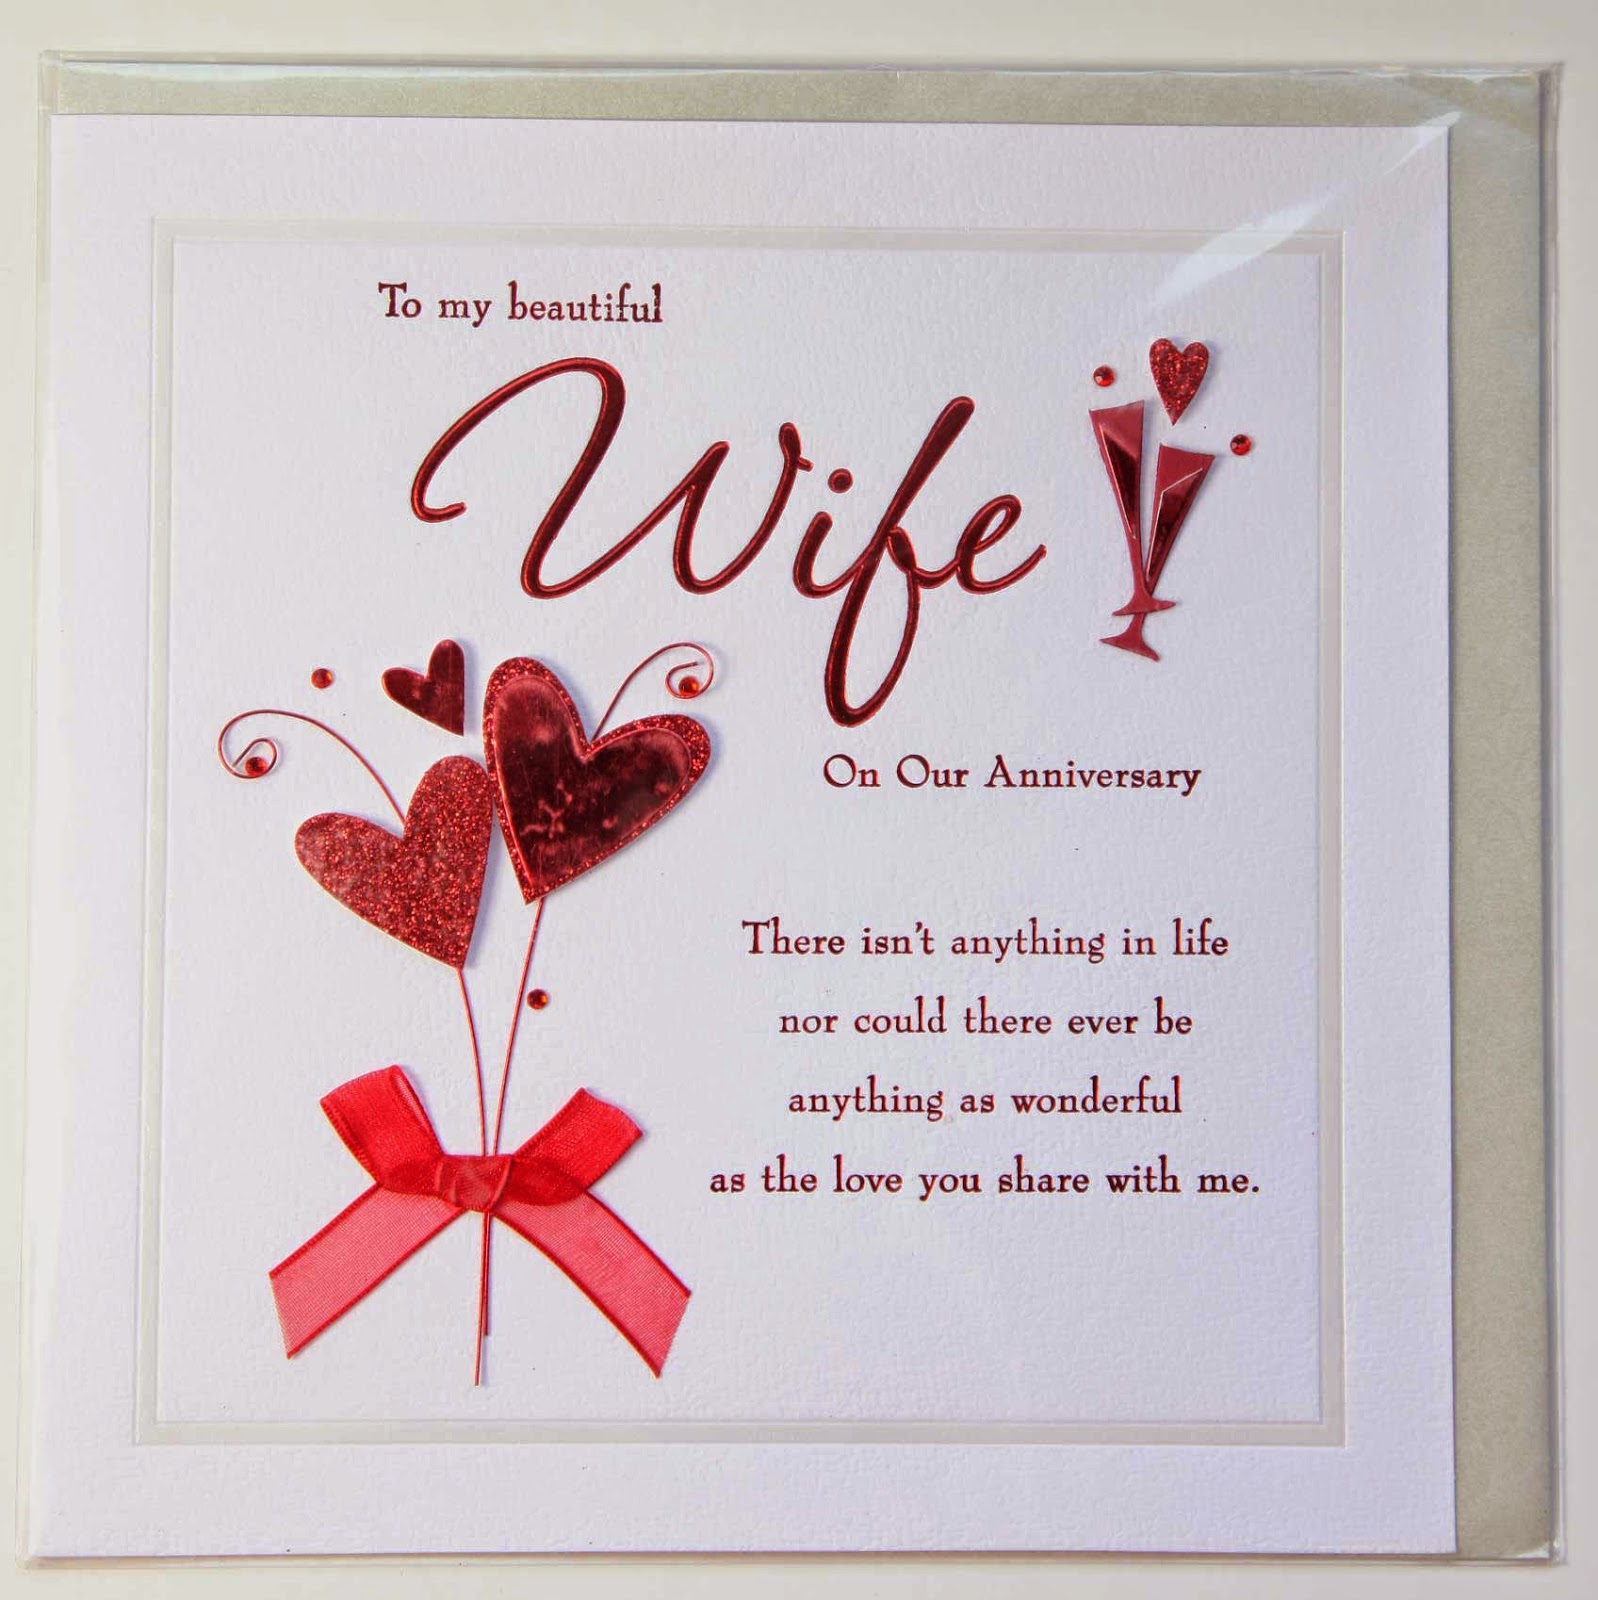 2 Year Wedding Anniversary Ideas For Wife : ... wife wedding anniversary wishes for wife wedding anniversary wishes